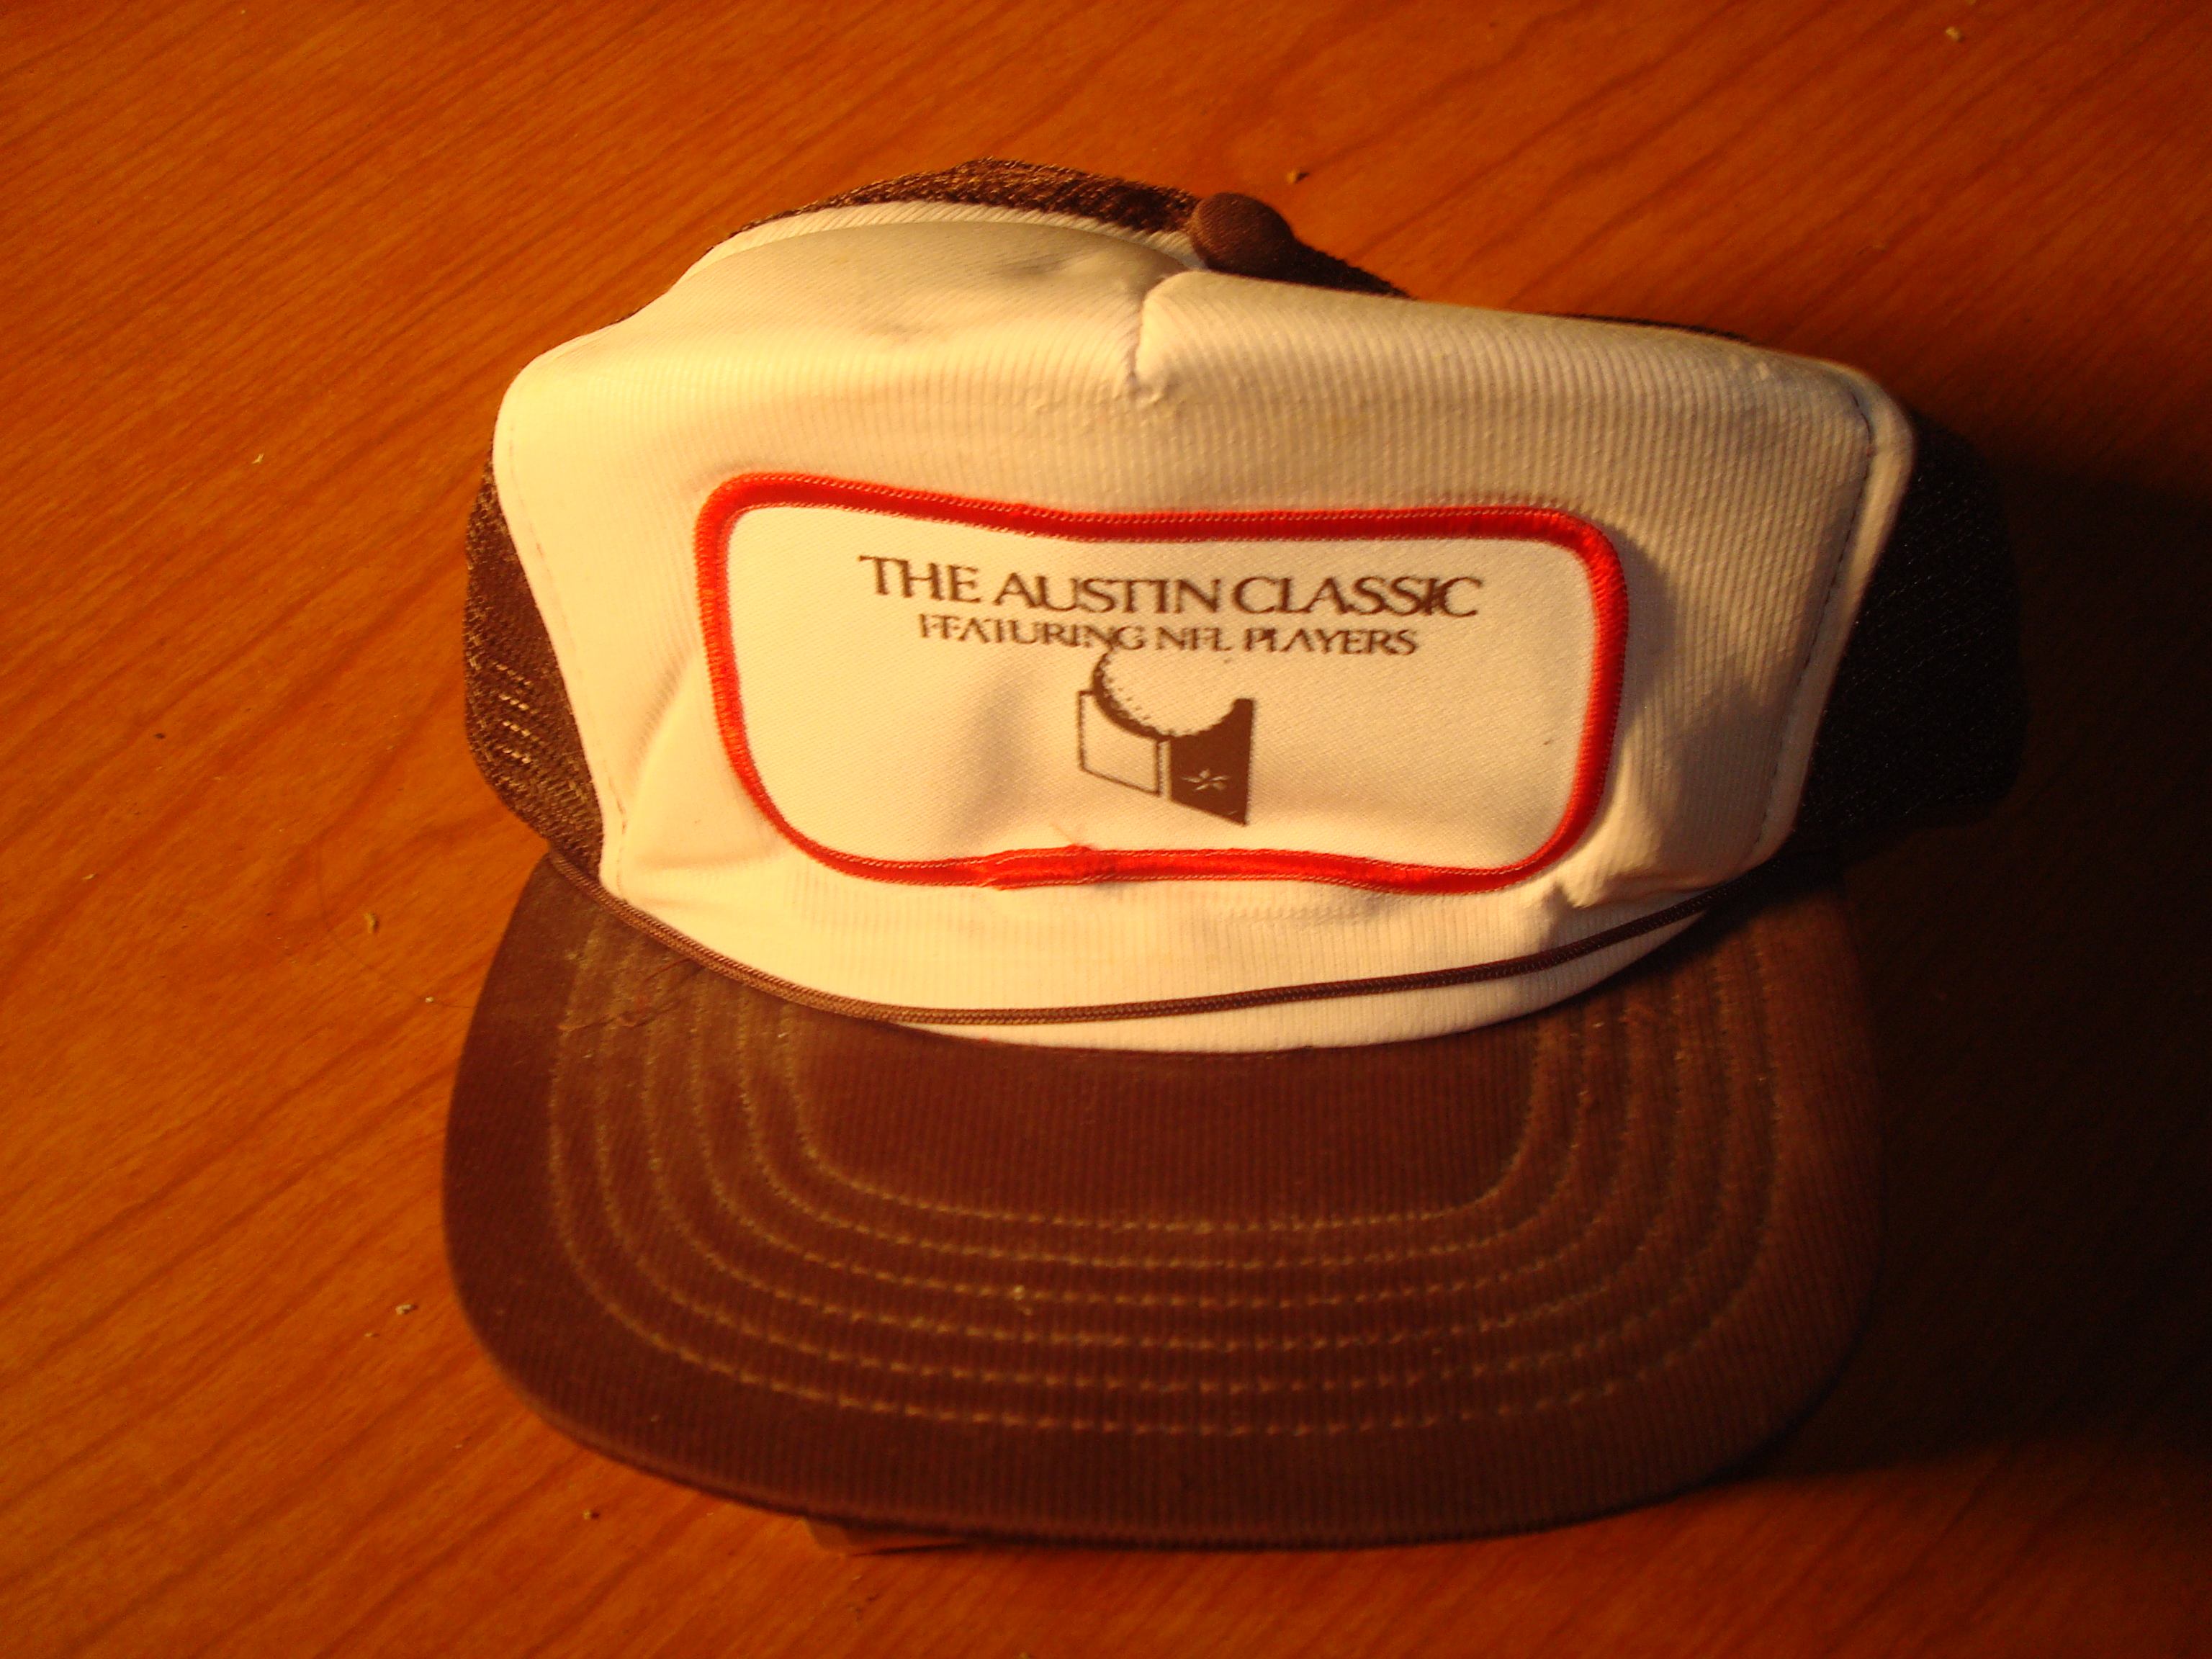 3a3eac864dc NFL - Official Cap 1981 The Ausin Classic Golf Tournament featuring NFL  Players Earl Campbell